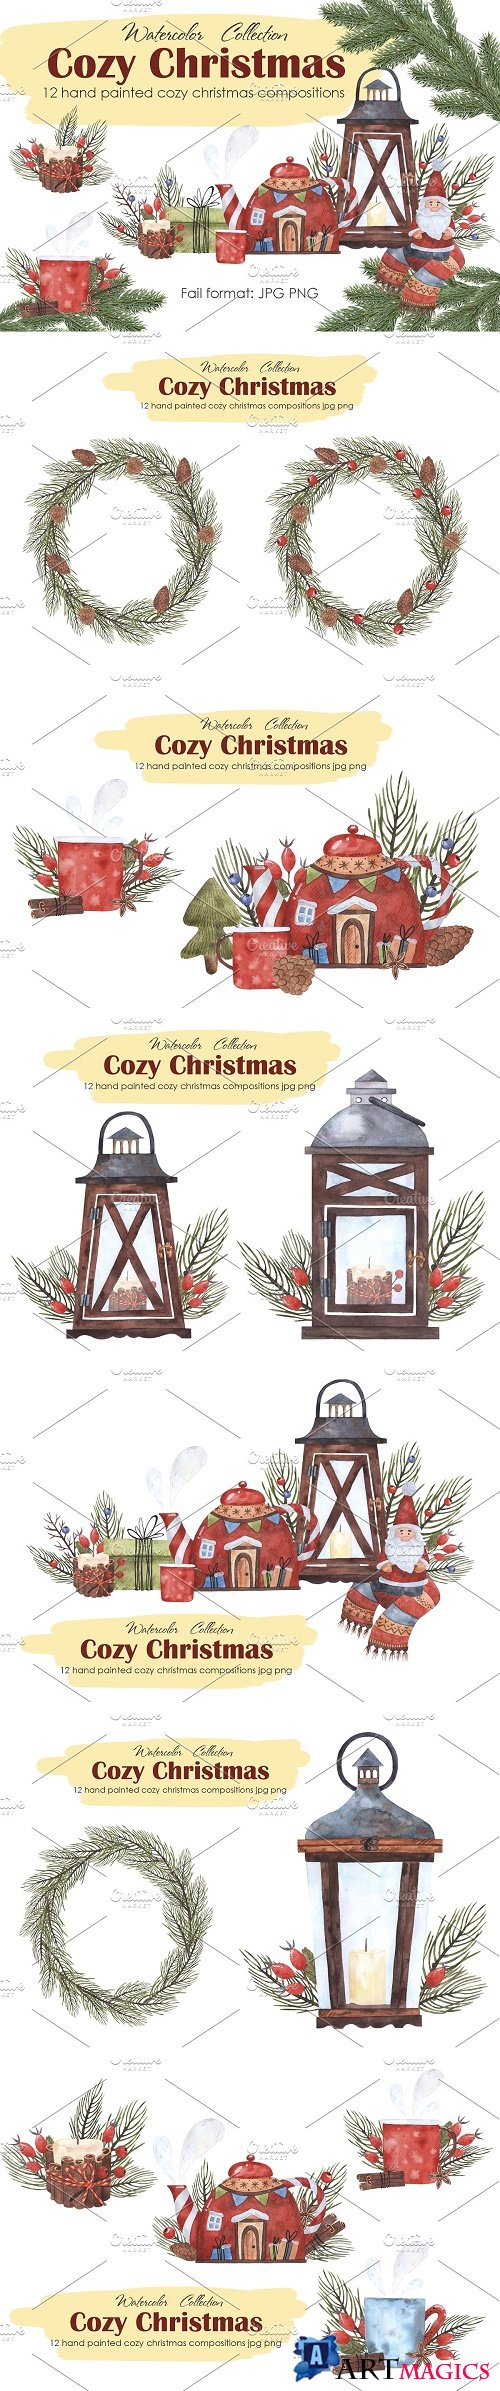 Cozy Christmas compositions - 4151467